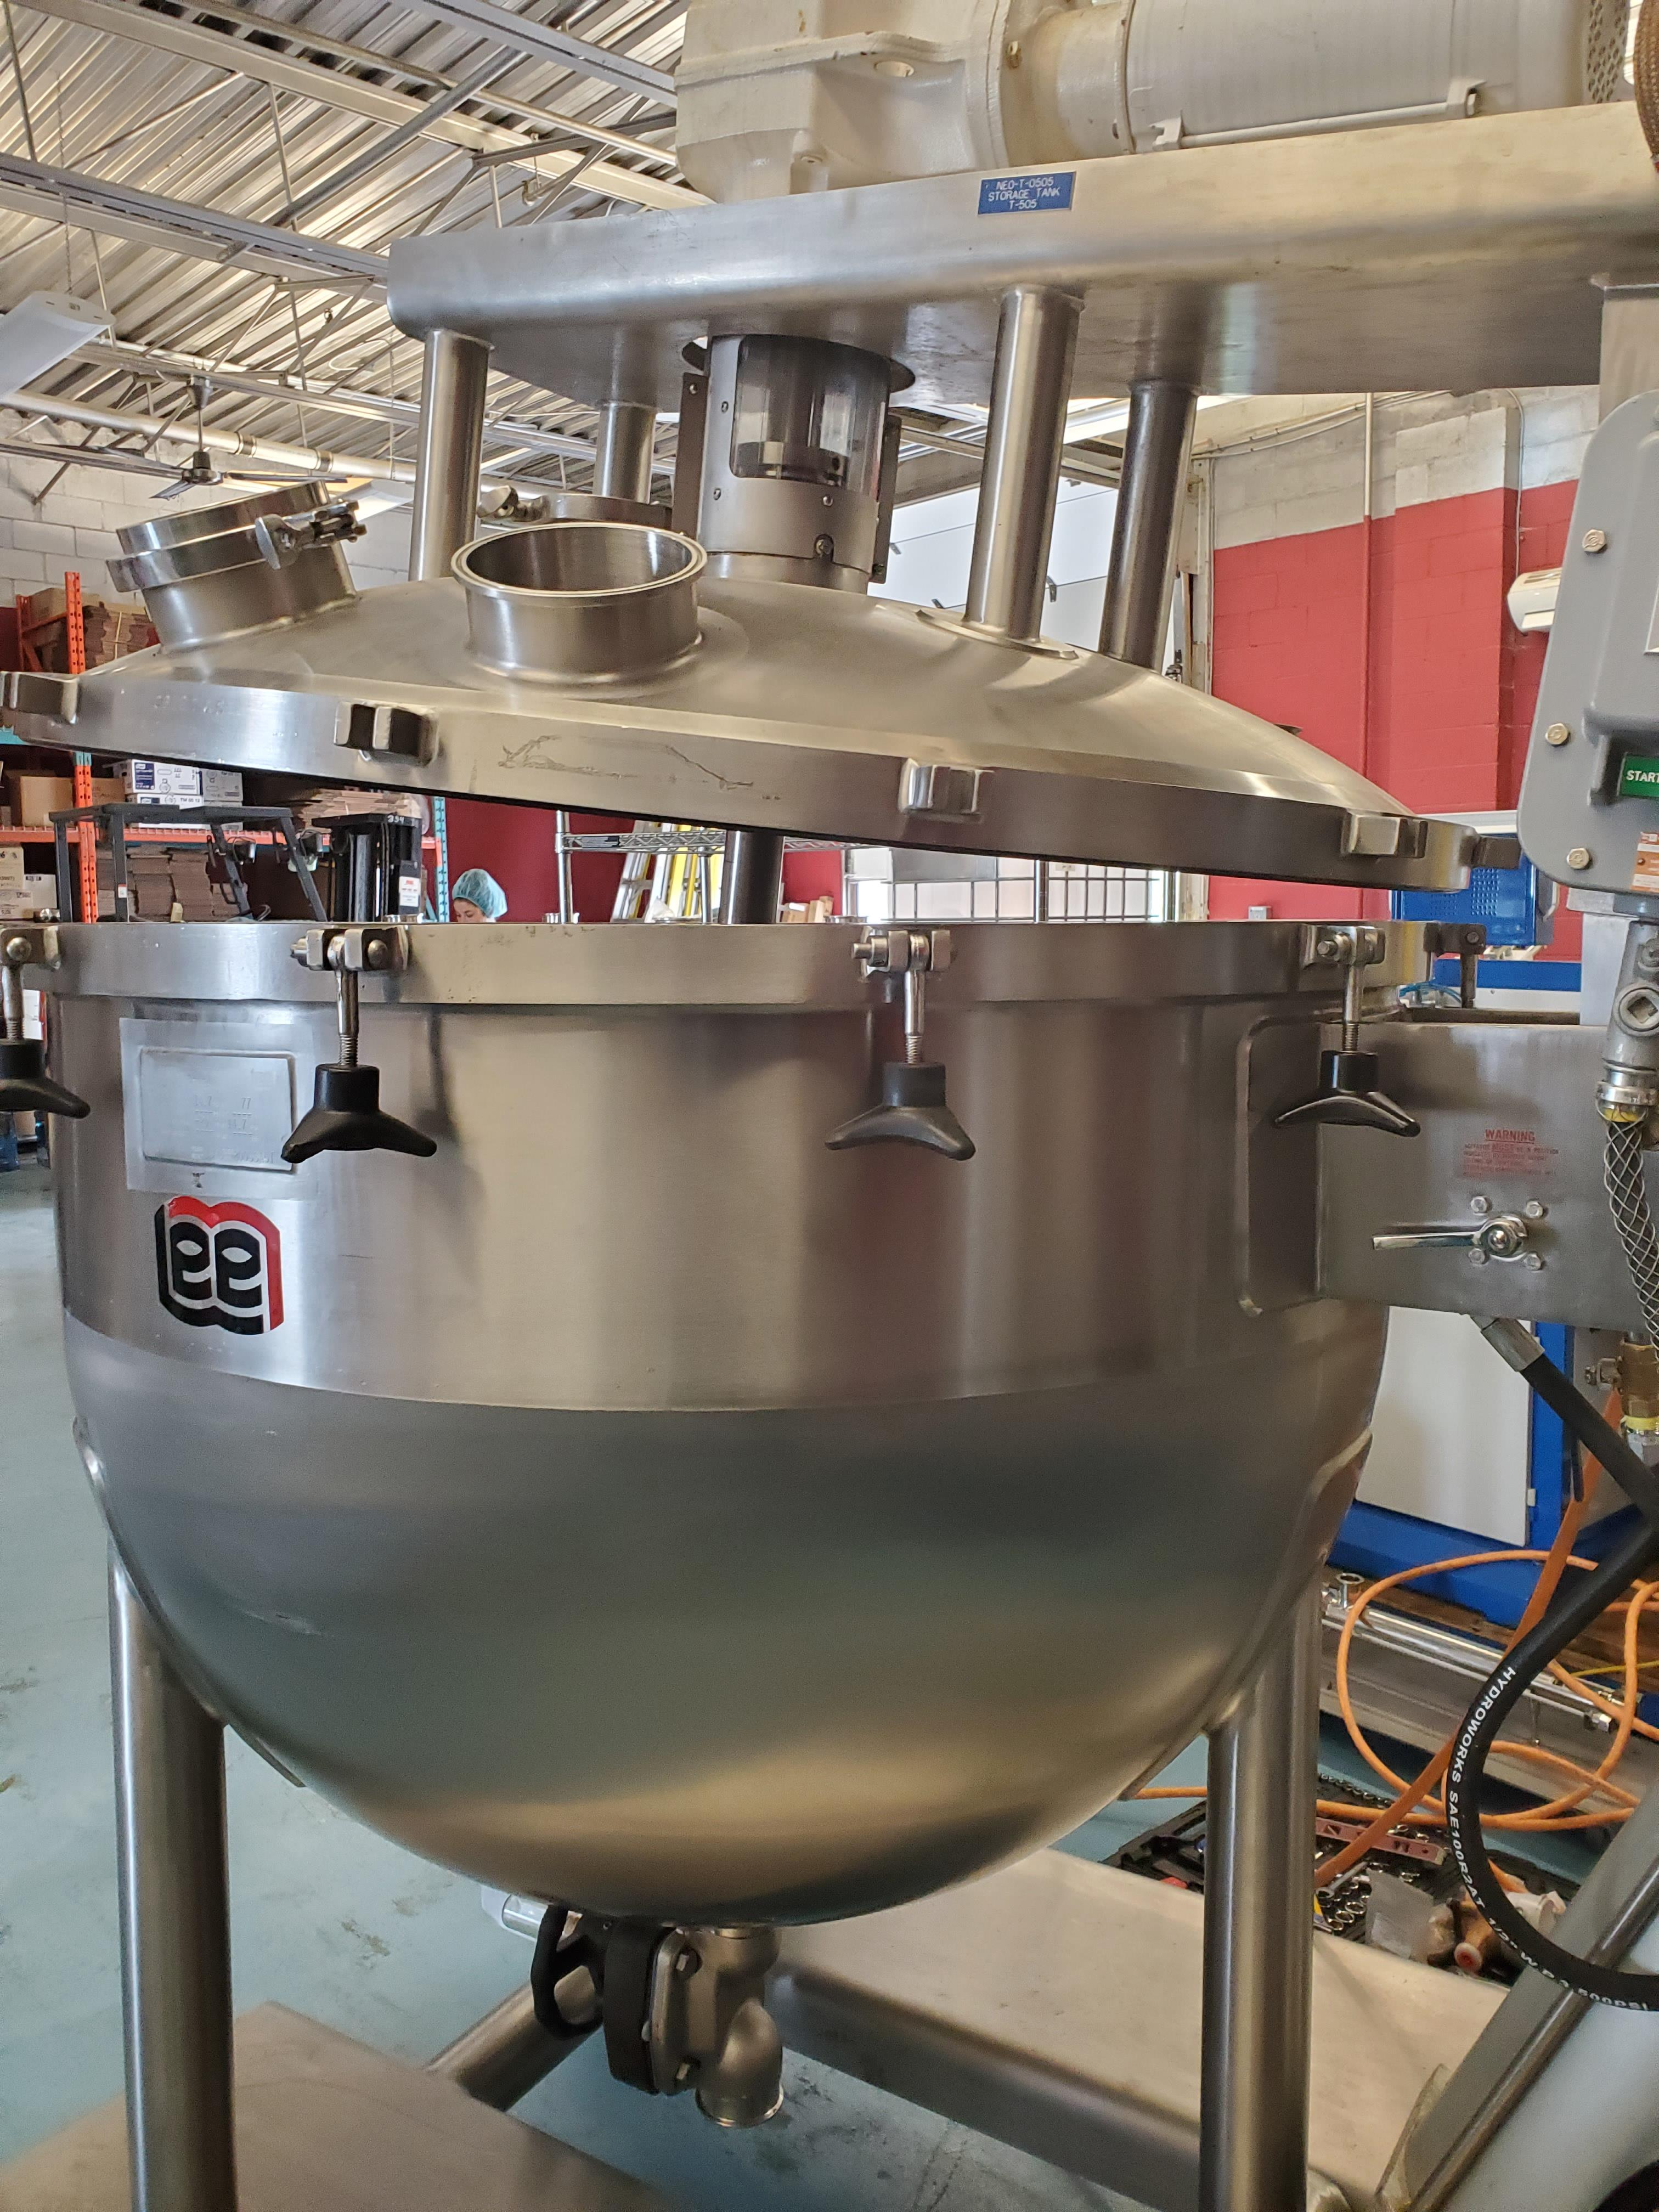 Lee 200 Gallon Stainless Steel Kettle with scrap agitation - Image 2 of 9